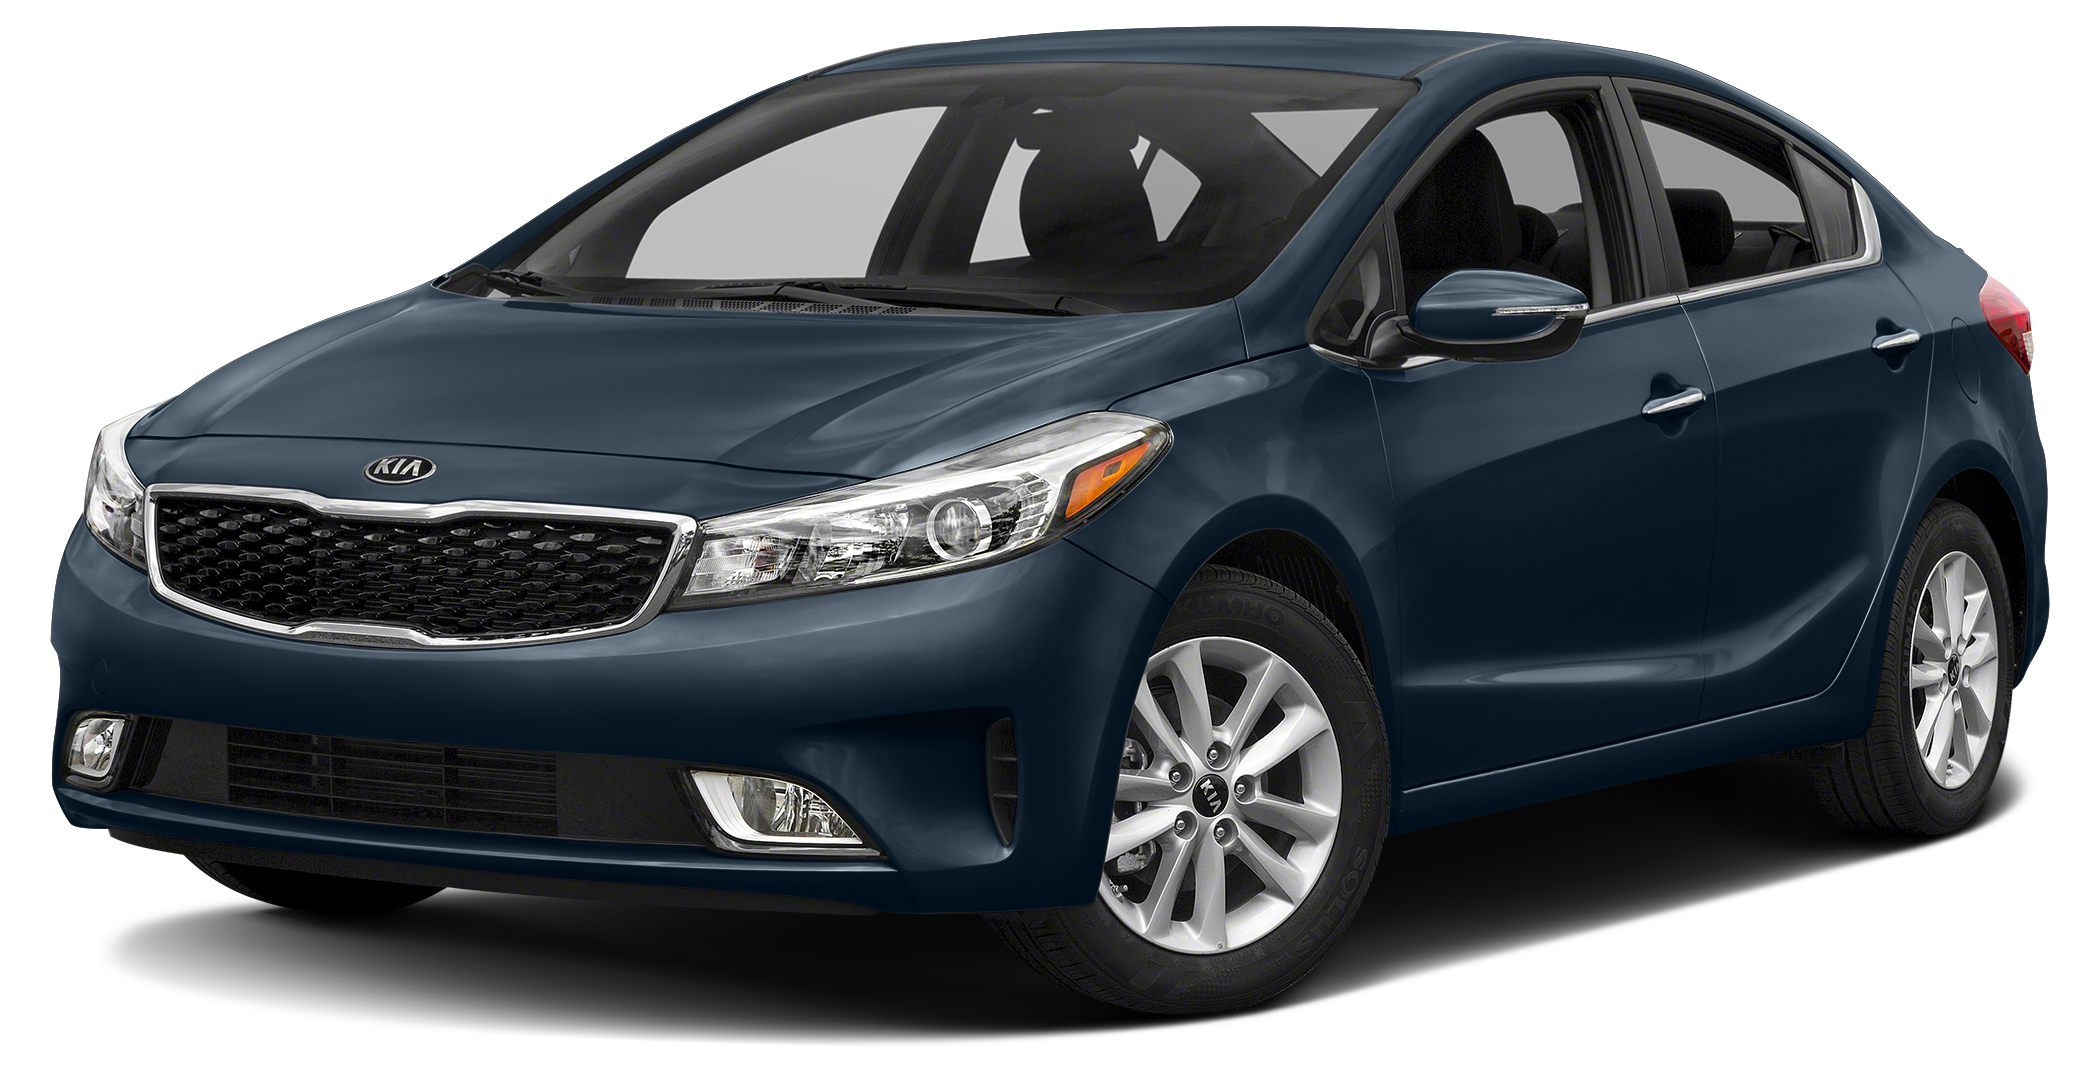 2018 Kia Forte S Miles 12Color Deep Sea Blue Stock K17608 VIN 3KPFL4A7XJE214345